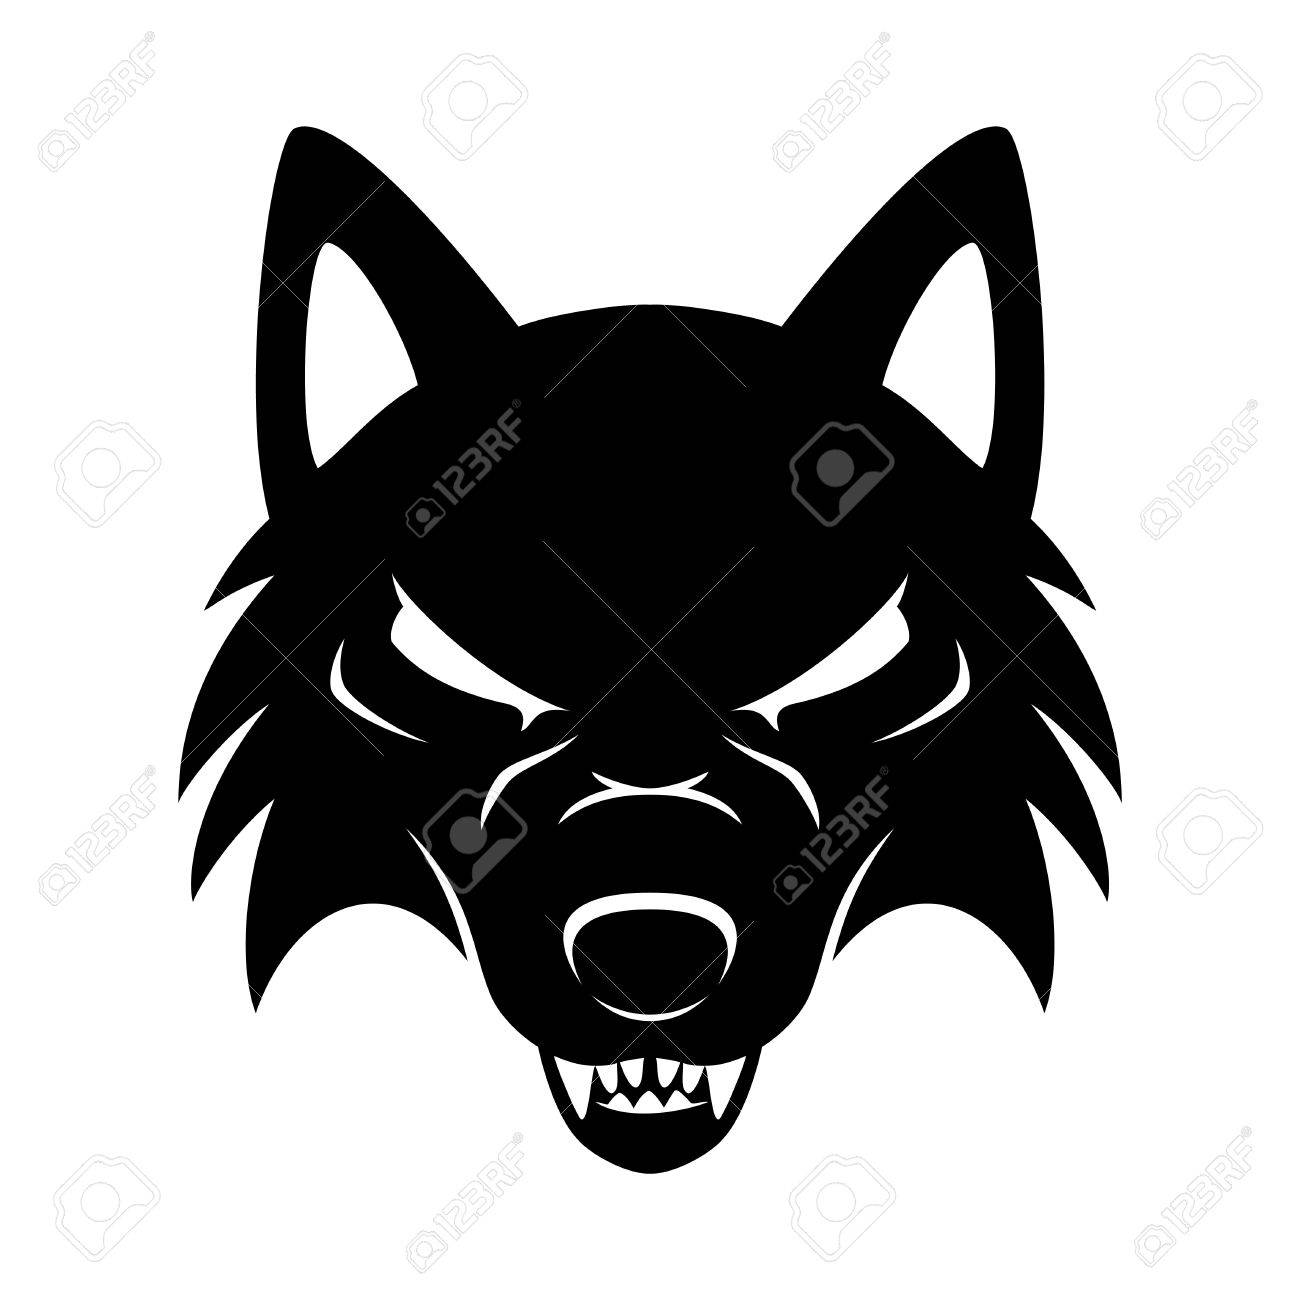 de851a289 Wolf Sign. Royalty Free Cliparts, Vectors, And Stock Illustration ...